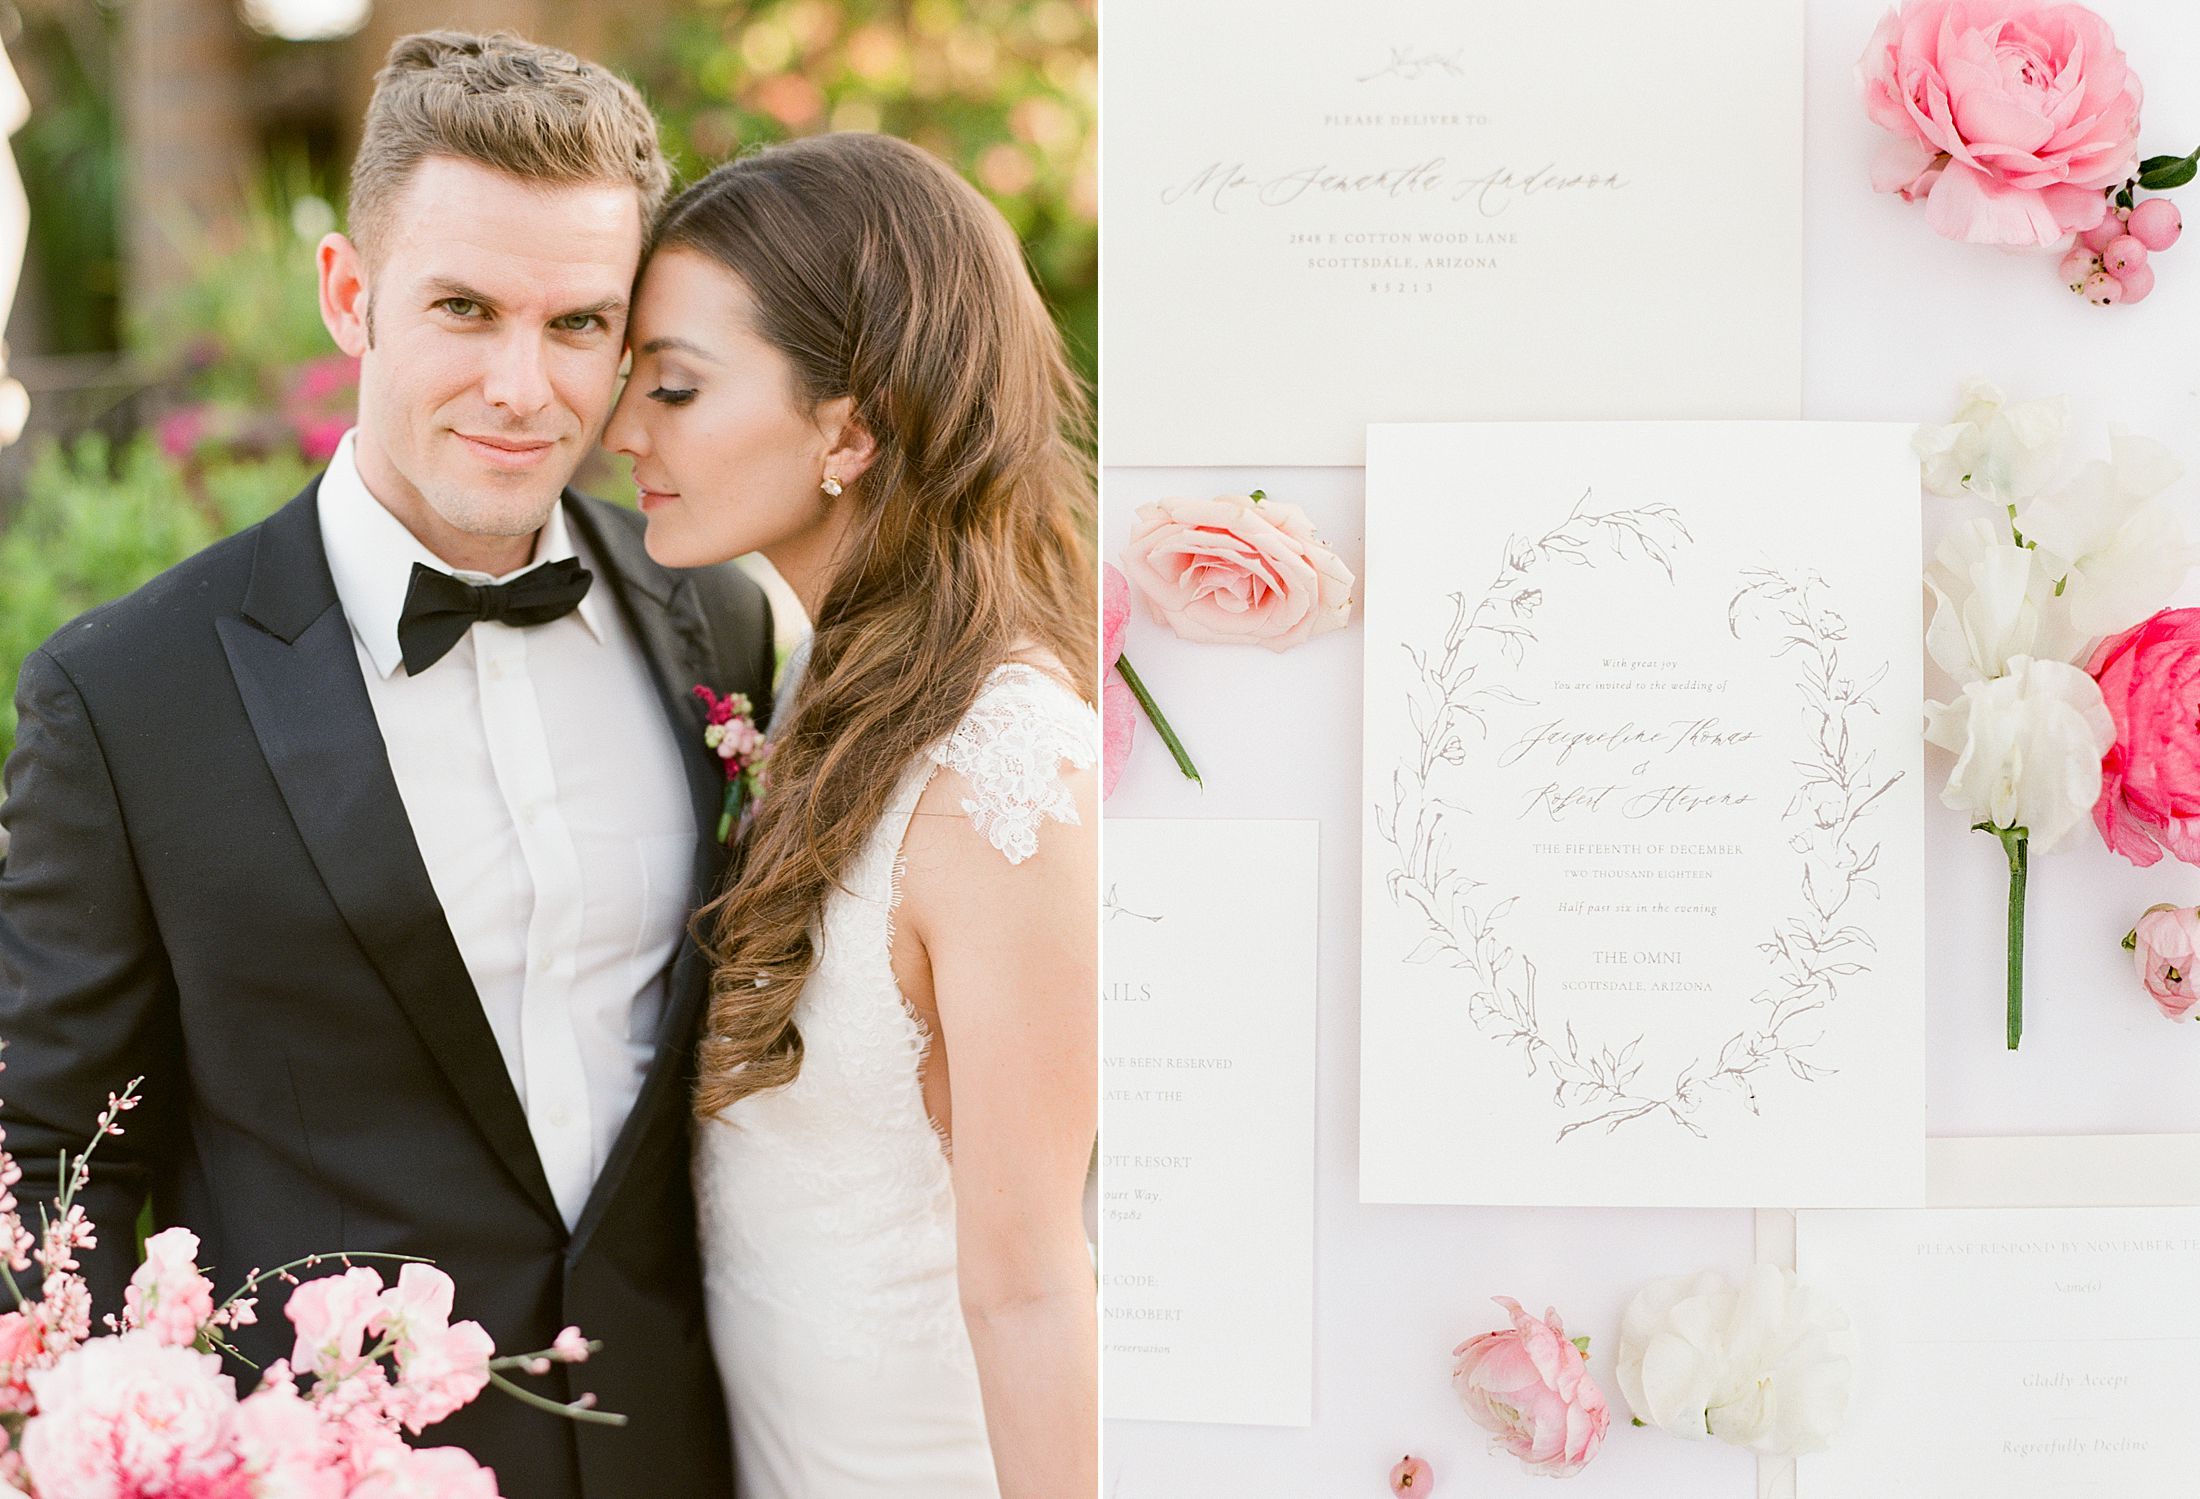 Pink Ombre Wedding Inspiration on Style Me Pretty - Royal Palms Wedding - Scottsdale Wedding - Ashley Baumgartner - Bloom and Blueprint - Wedding Puppies - Bulldog Puppies_0048.jpg